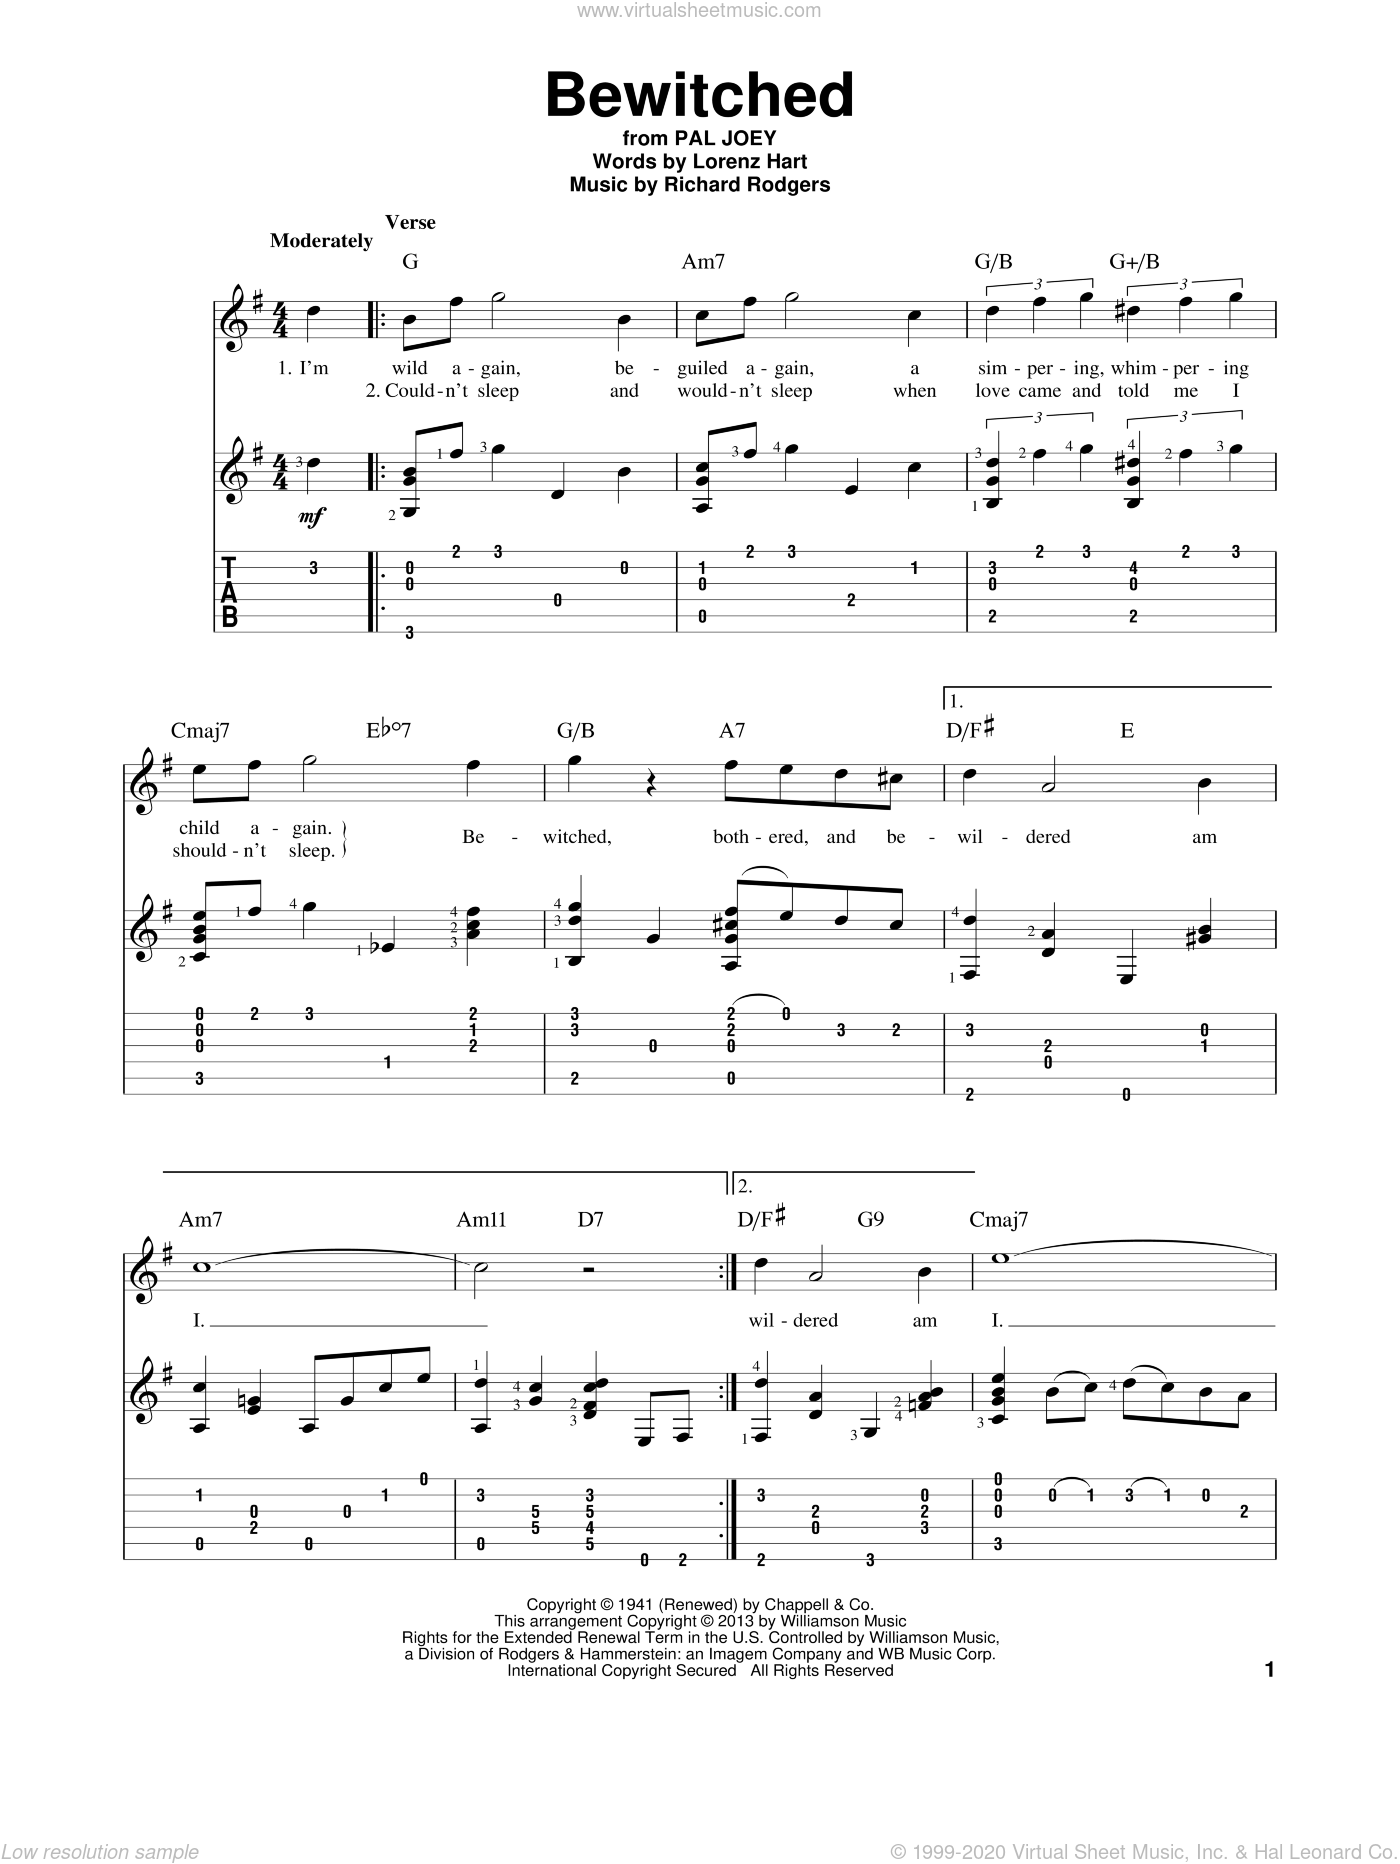 Bewitched sheet music for guitar solo by Rodgers & Hart, Betty Smith Group, Lorenz Hart and Richard Rodgers, intermediate skill level